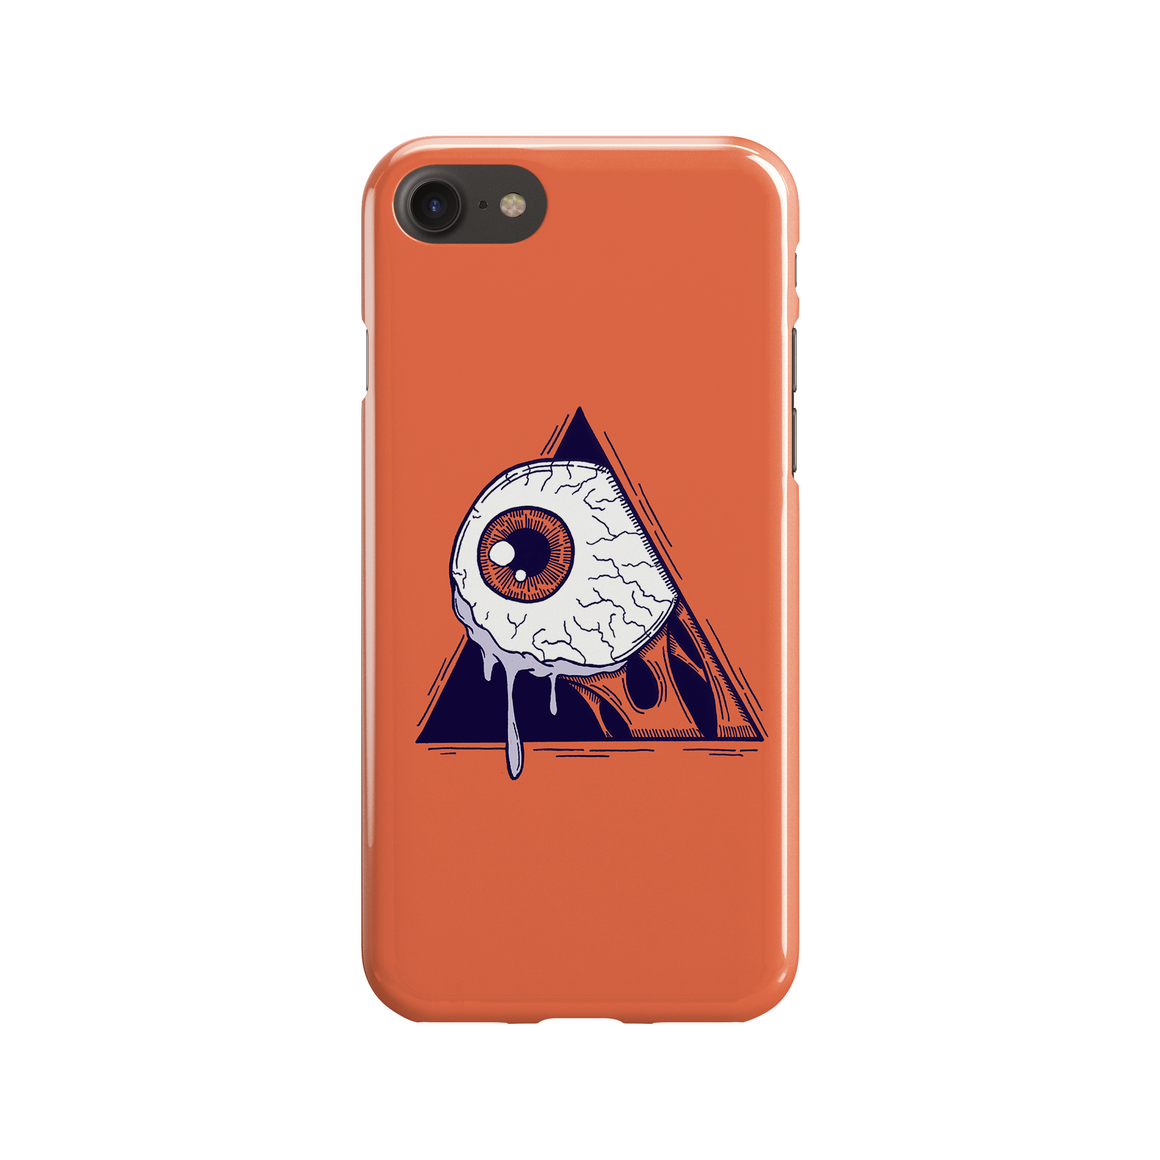 A Clockwork Eye Phone Case